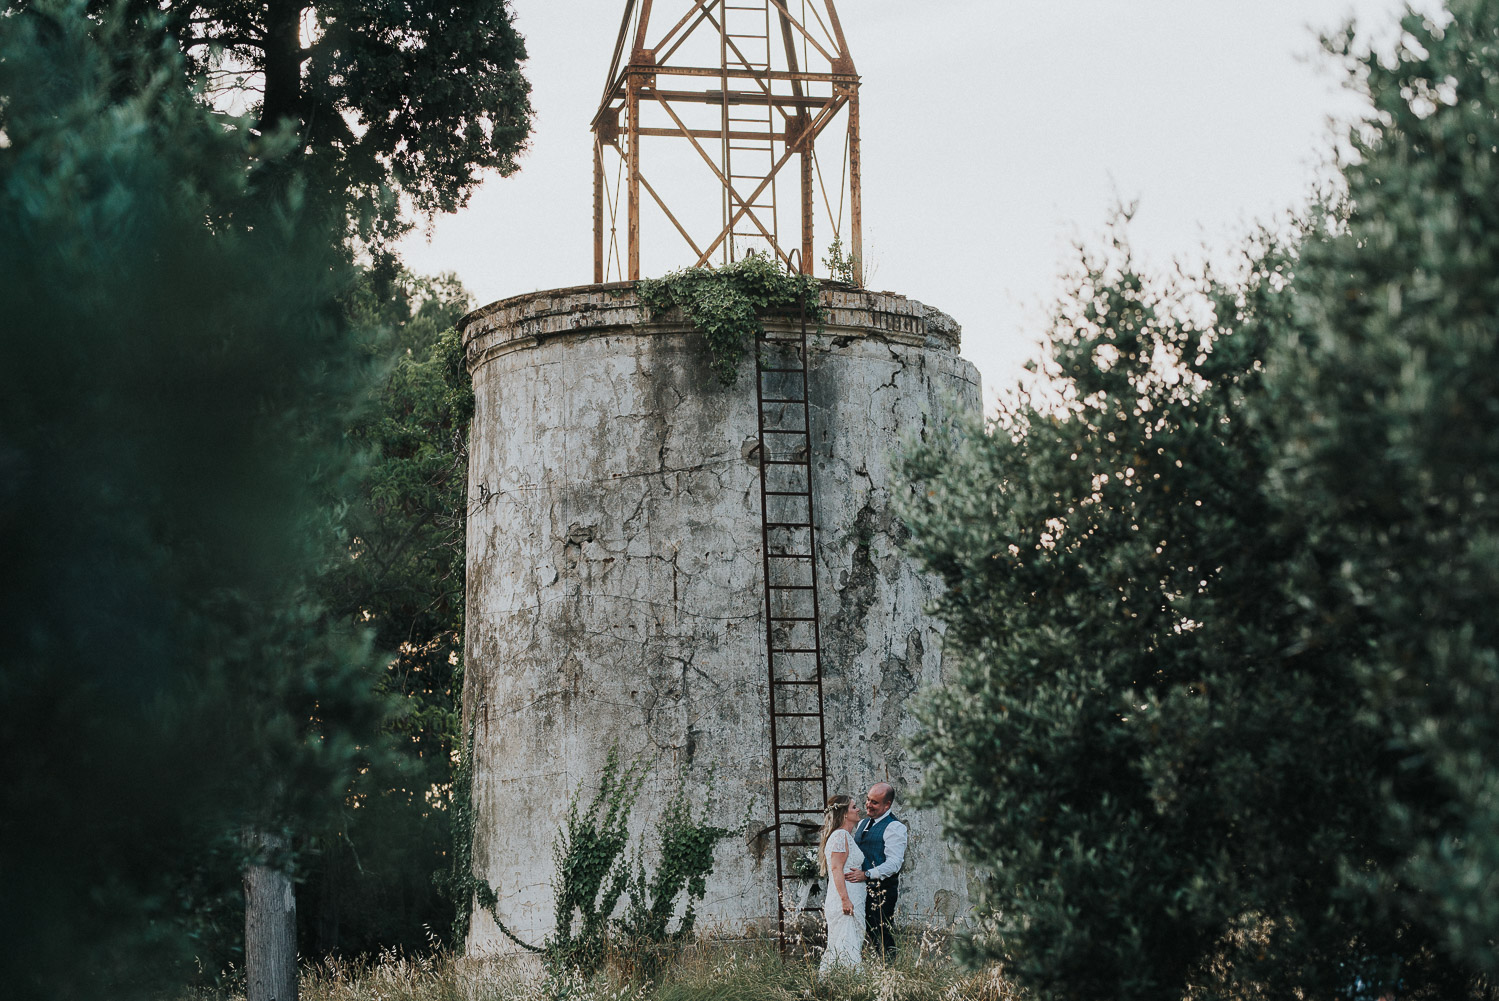 chateau_canet_carcassonne_wedding_katy_webb_photography_france_UK221